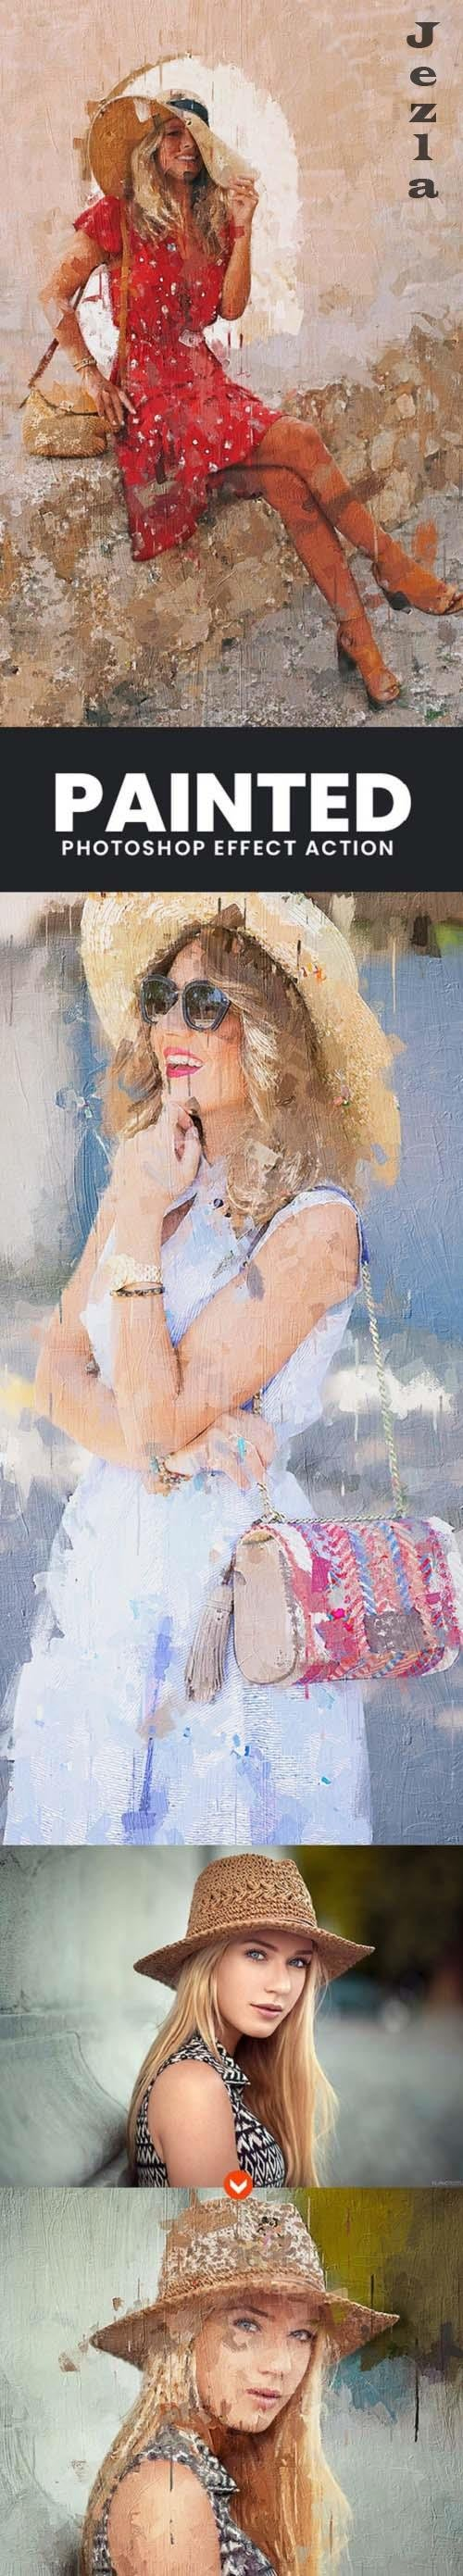 Painted Photoshop Effect - 32982177